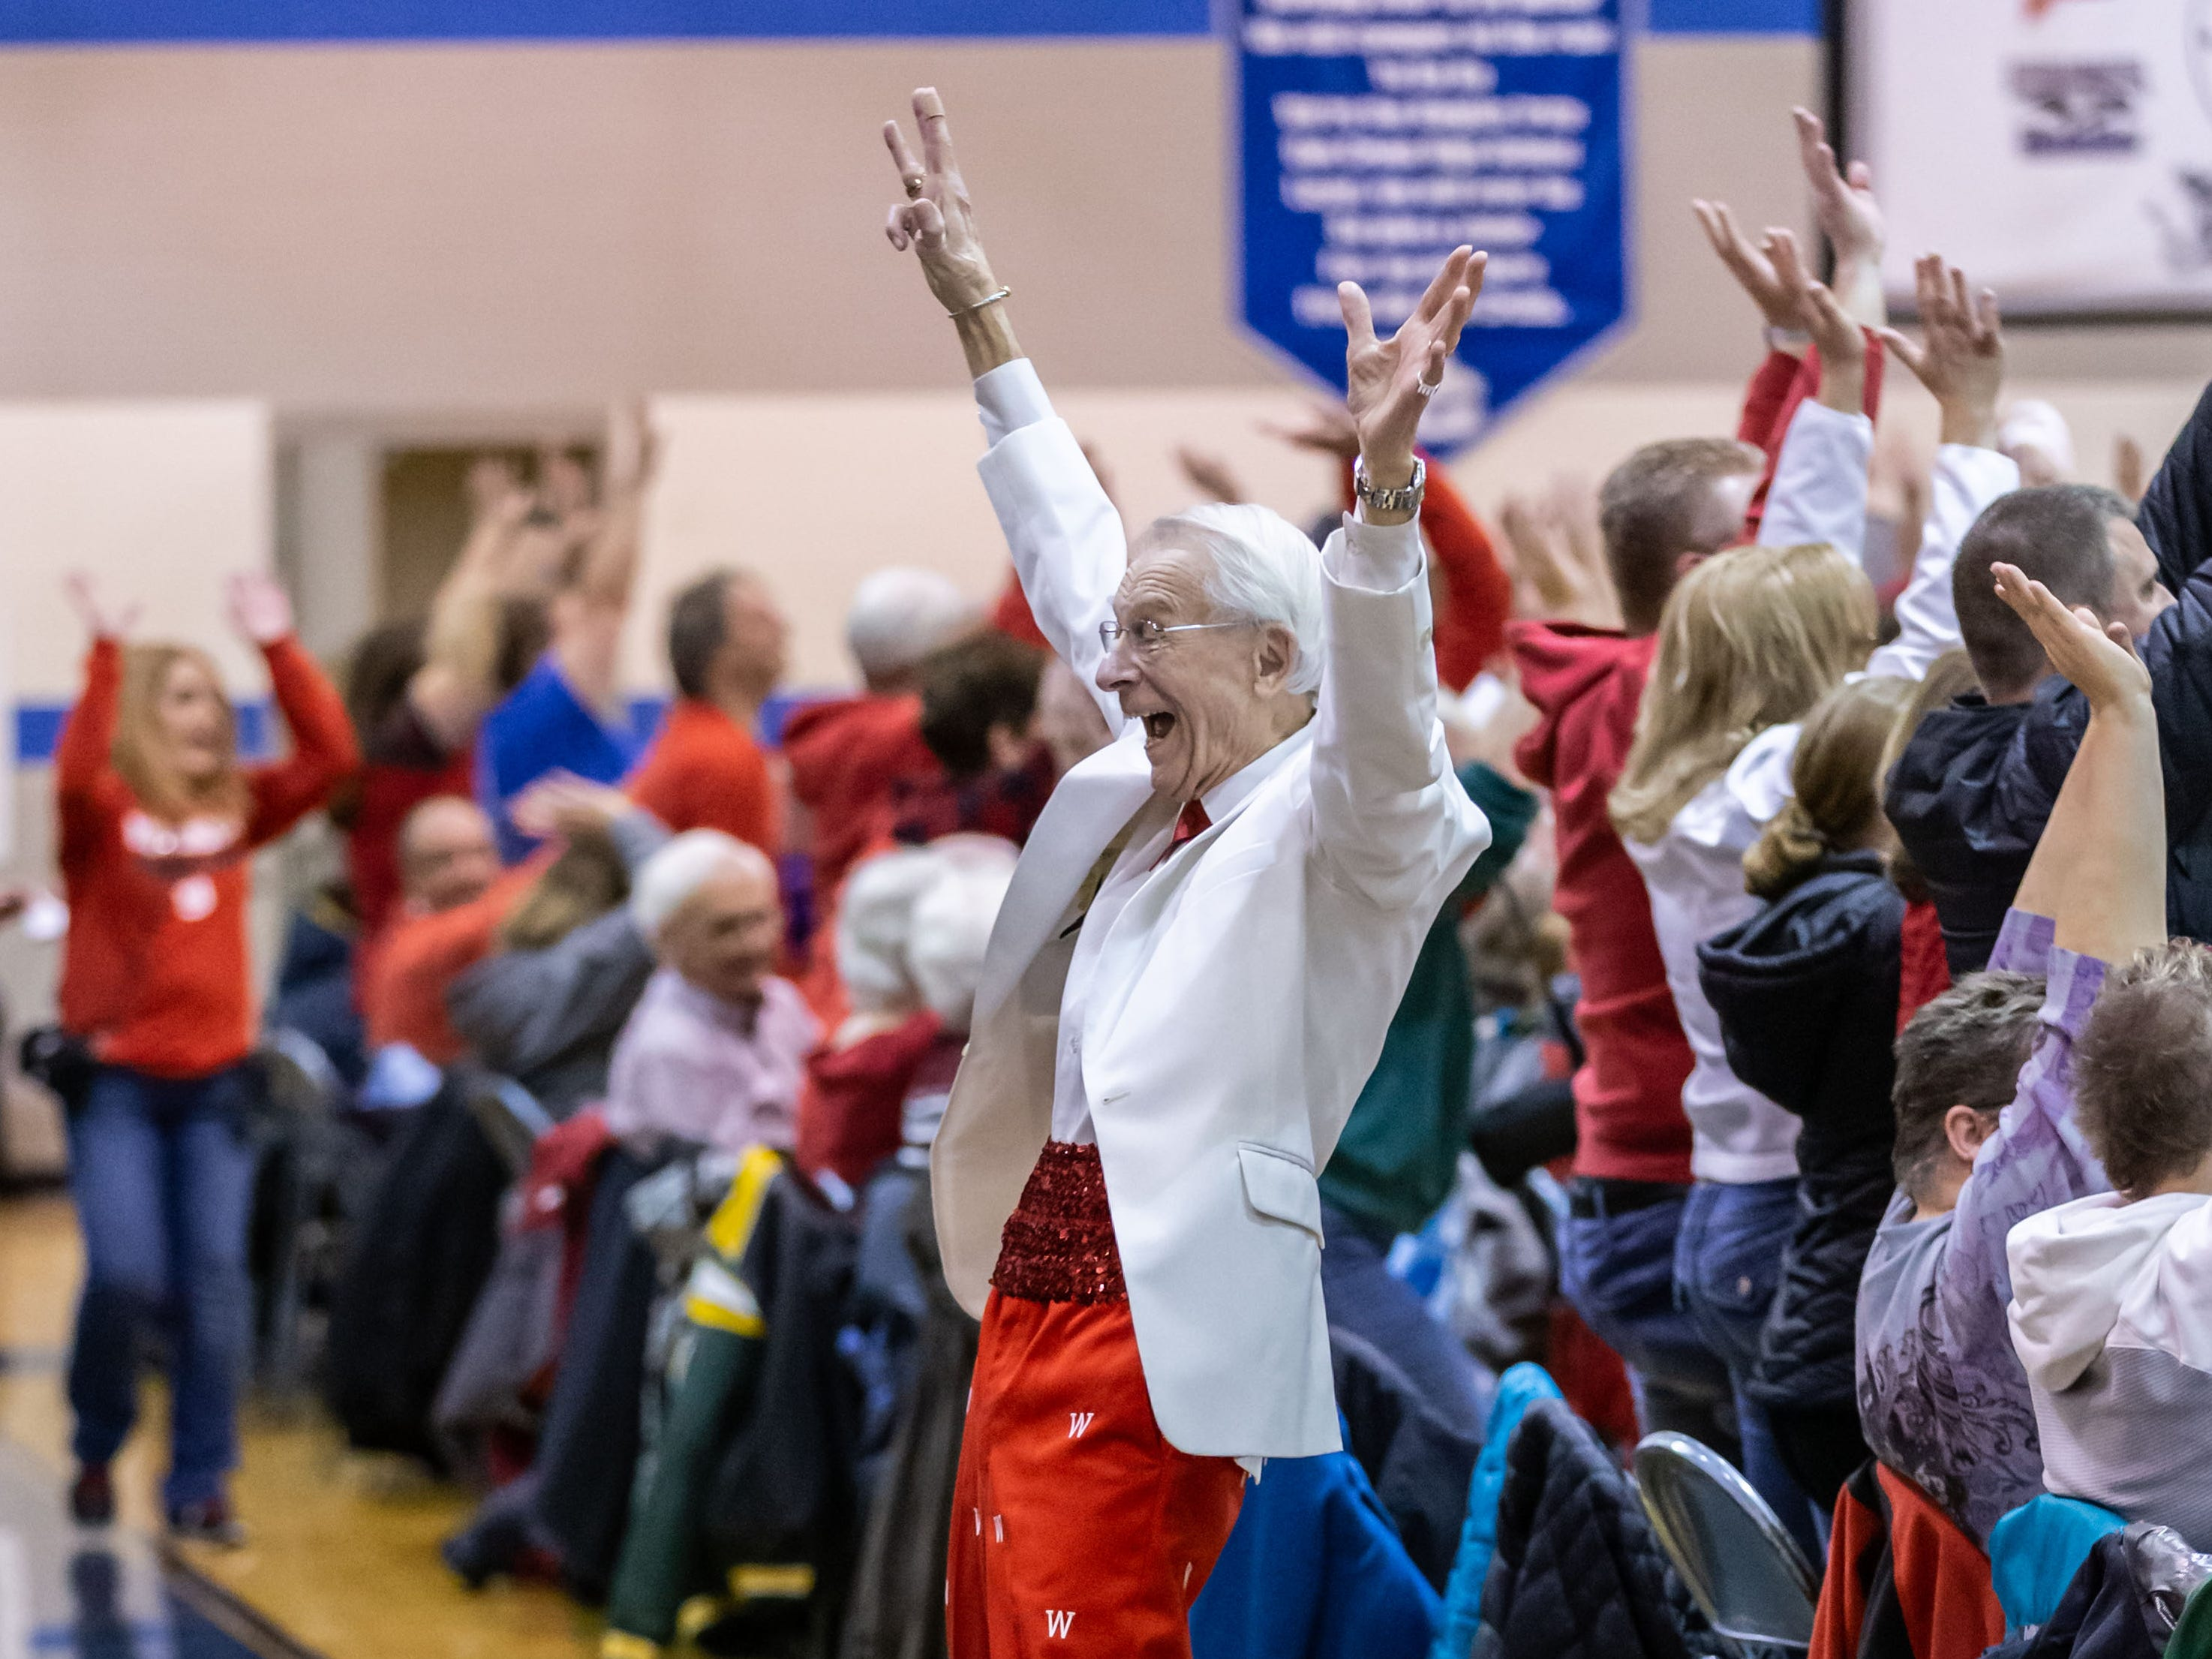 """University of Wisconsin-Madison Varsity Band Director Michael Leckrone interacts with the crowd during the band's 23rd """"Show and Revue"""" at Oak Creek High School on Sunday, Feb. 10, 2019."""